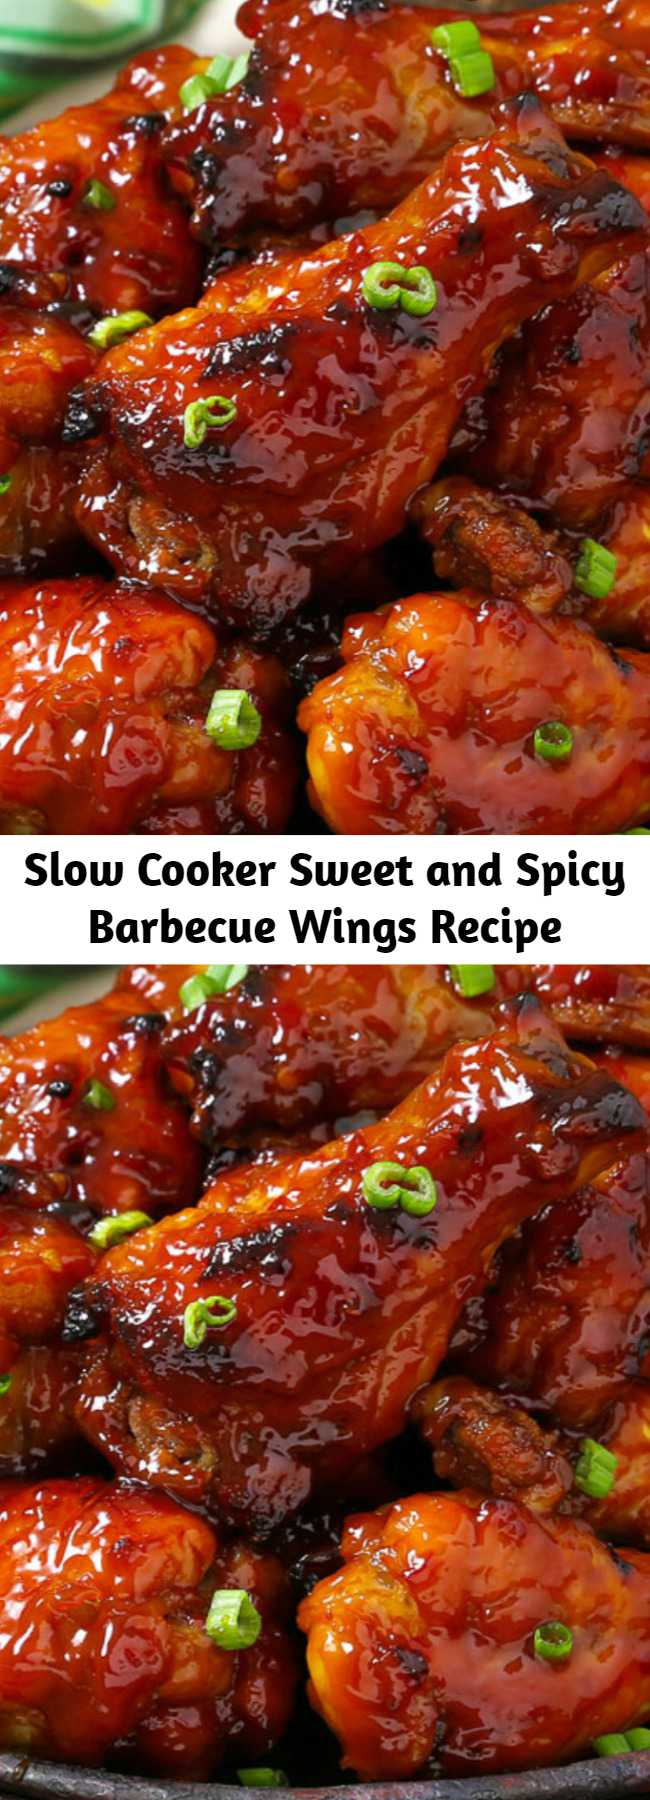 Slow Cooker Sweet and Spicy Barbecue Wings Recipe - Slow Cooker Sweet and Spicy Barbecue Wings are so tender the meat falls off the bone and melts in your mouth. You get the best of both worlds with this bold barbecue sauce. Made in the crockpot you won't find an easier recipe! They just about cook themselves. #Crockpot #Appetizer